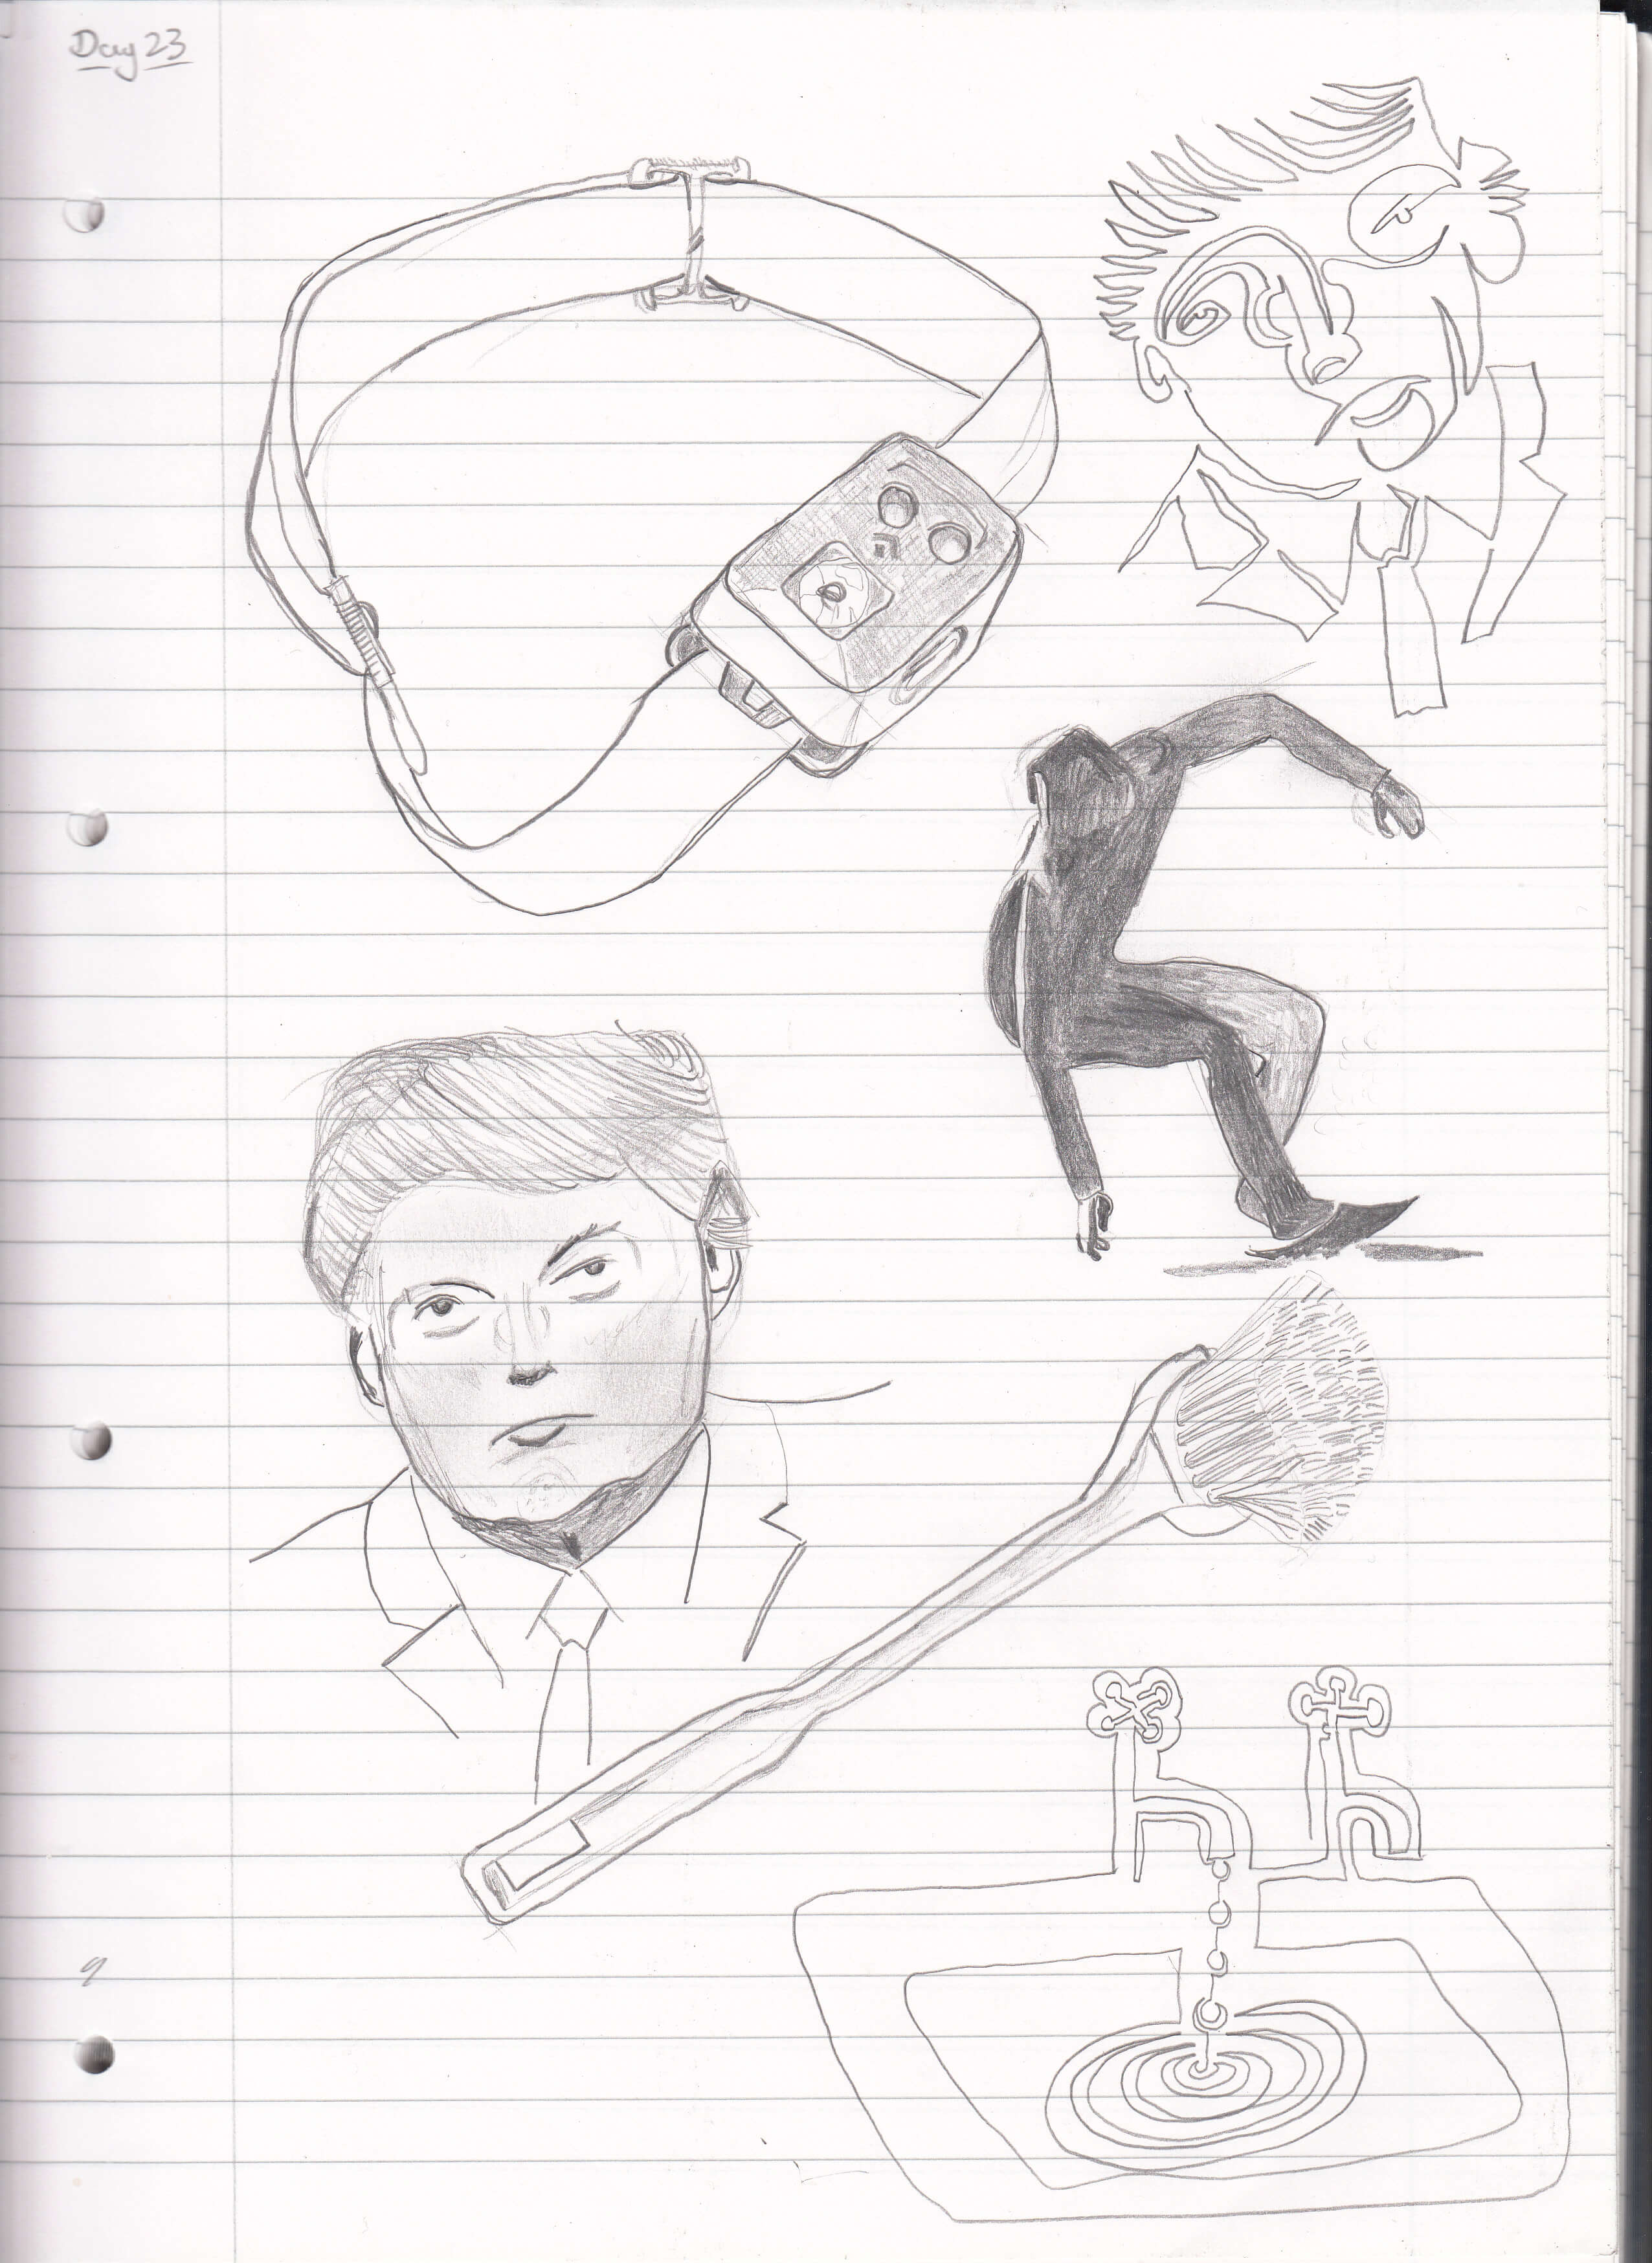 2552x3496 Day 23 Head Torch, Donald Trump, Surfer, Dish Brush, And One Line